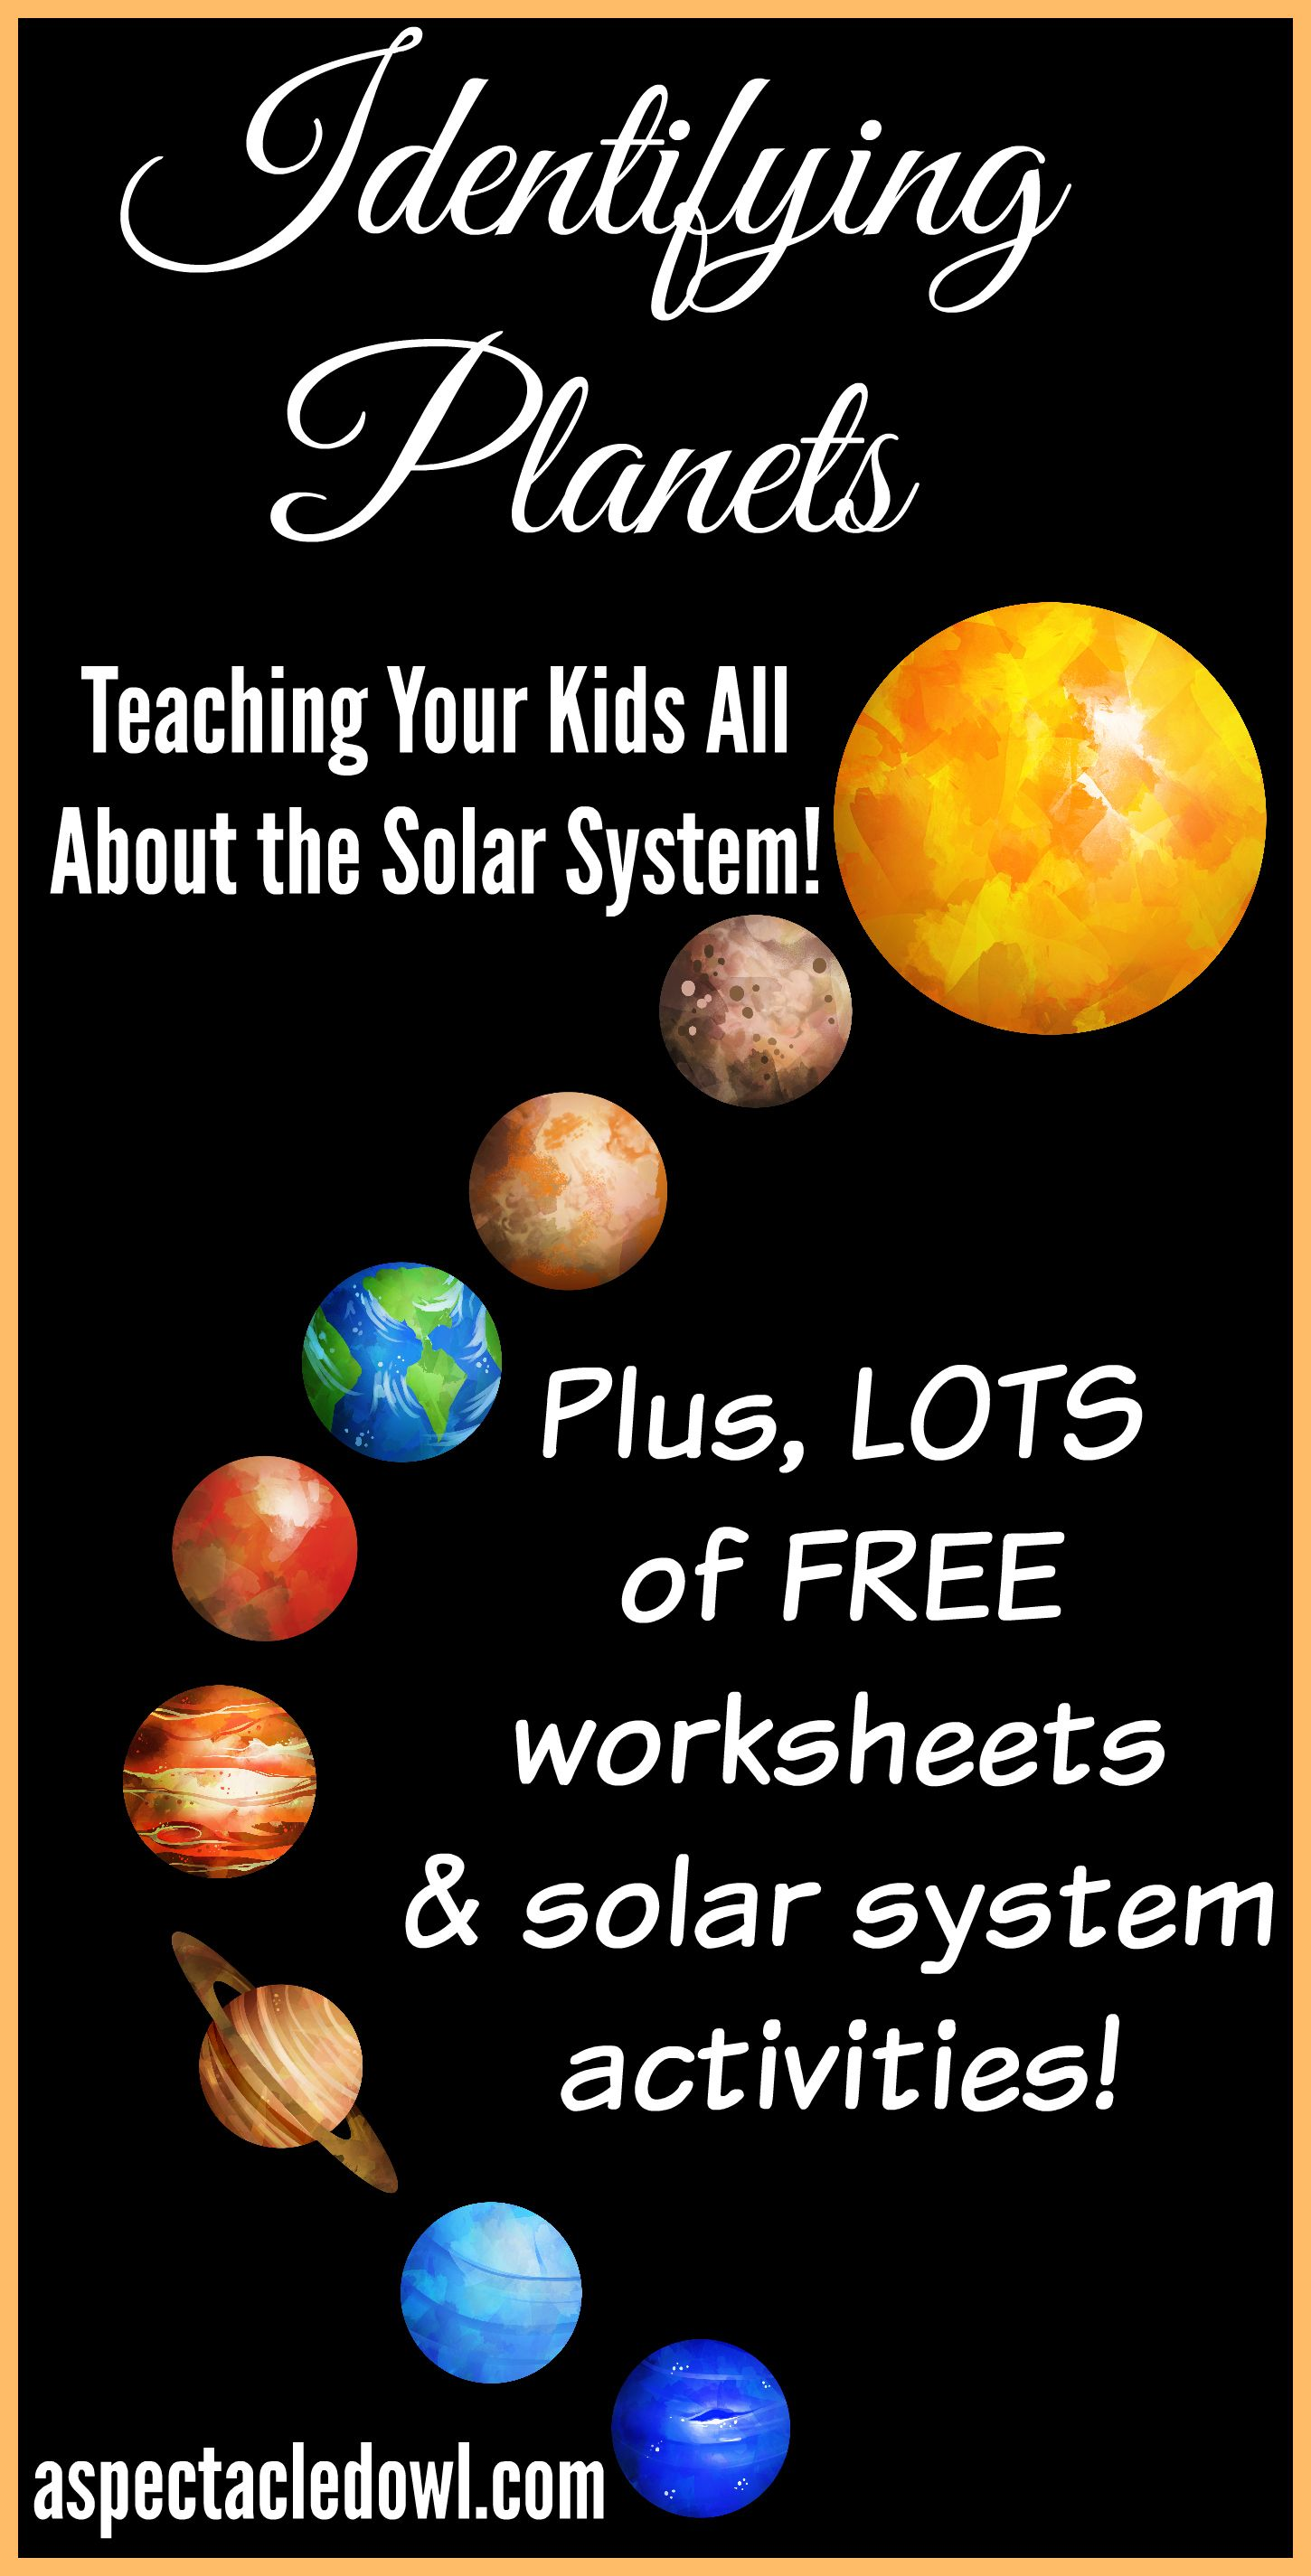 Solar System Facts Make Identifying Planets Easy For Kids